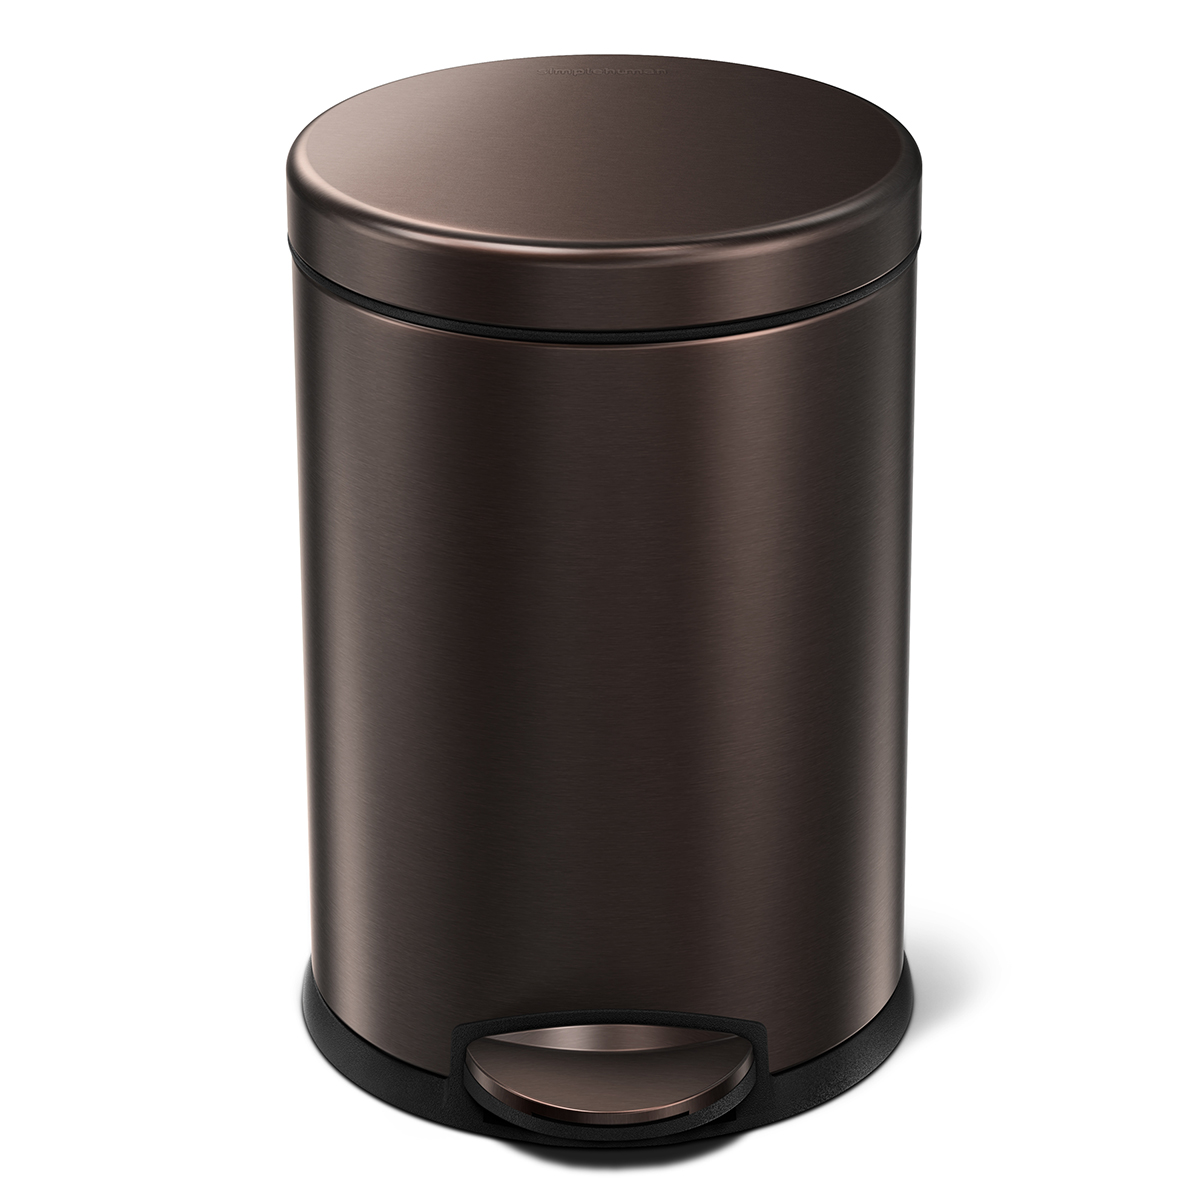 simplehuman Bronze 1.2 gal. Round Step Trash Can